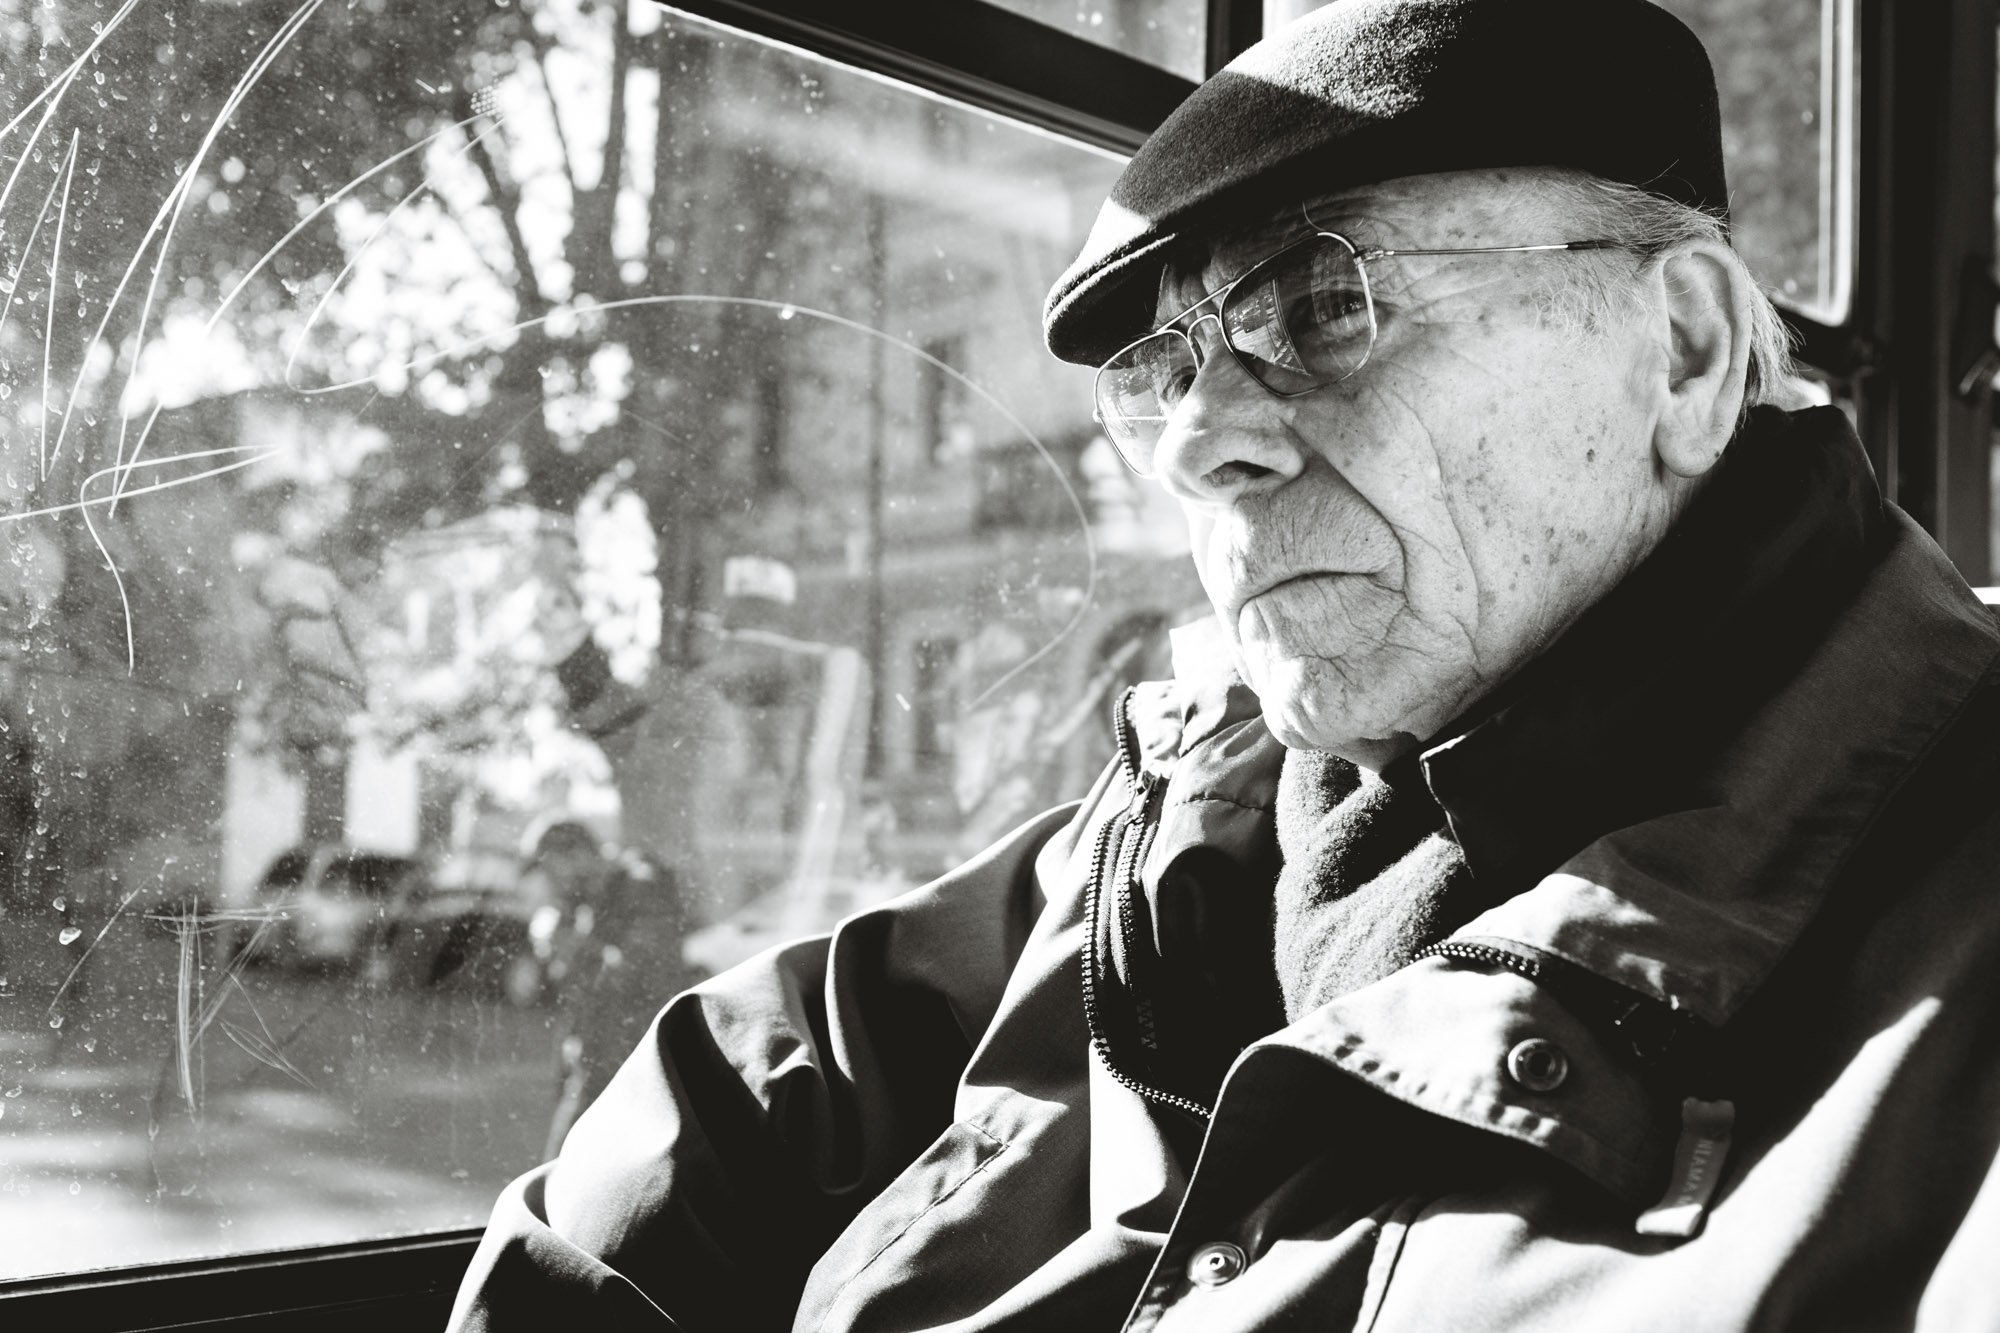 Old Man Looking Out Window of Bus